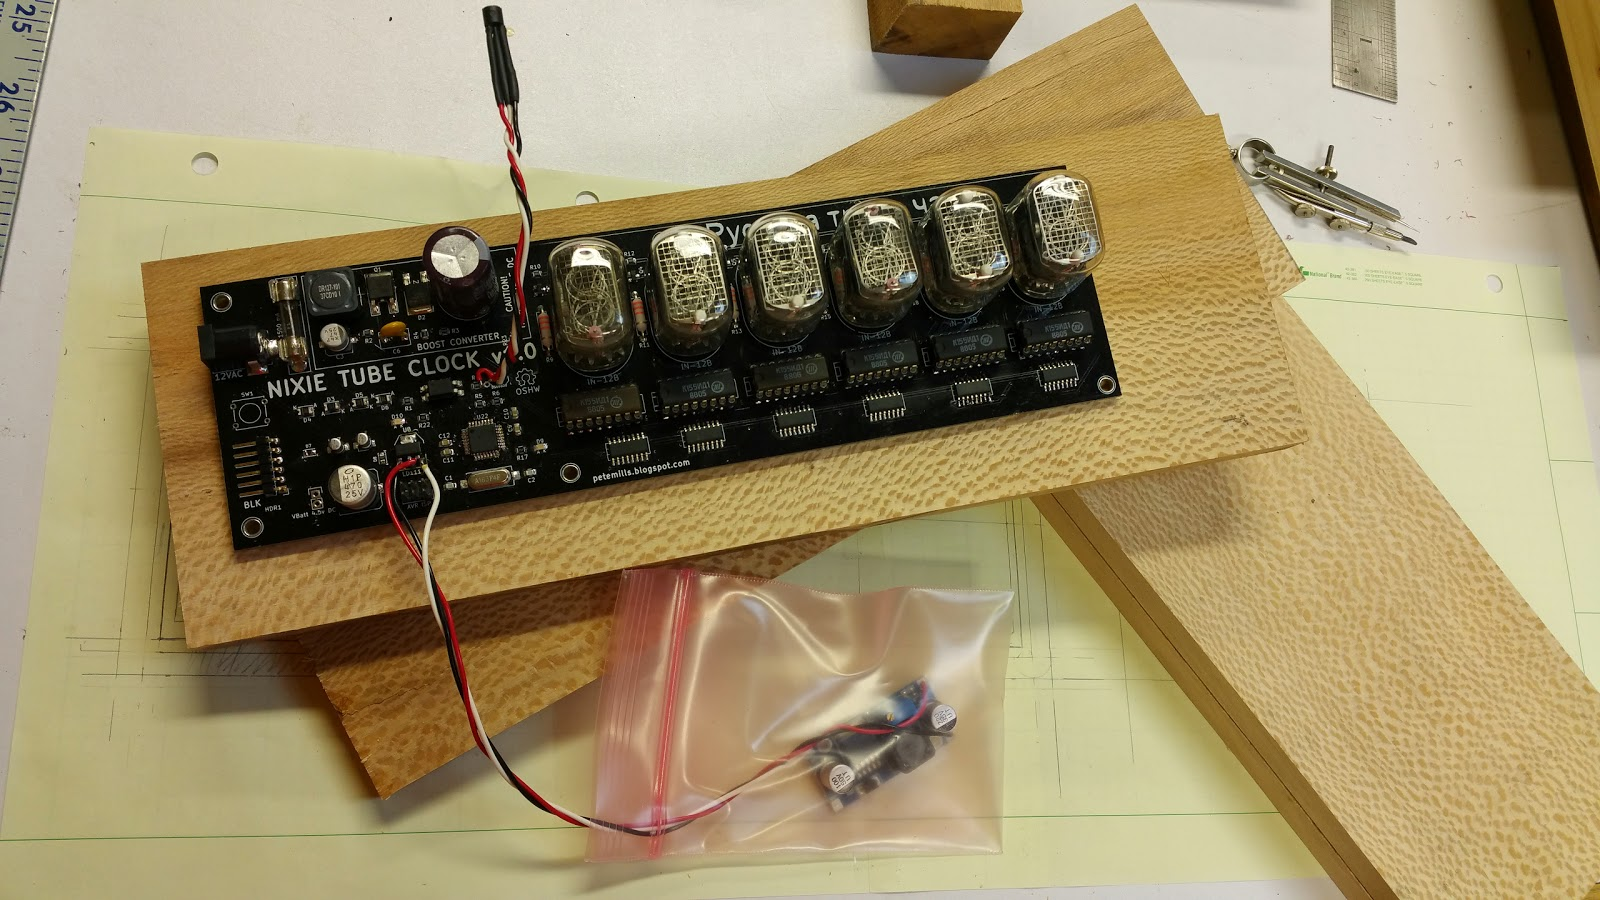 Nixie Tube Clock Schematic Of My 6 Digit Here Are Some Photos Admiring The Sycamore Grain